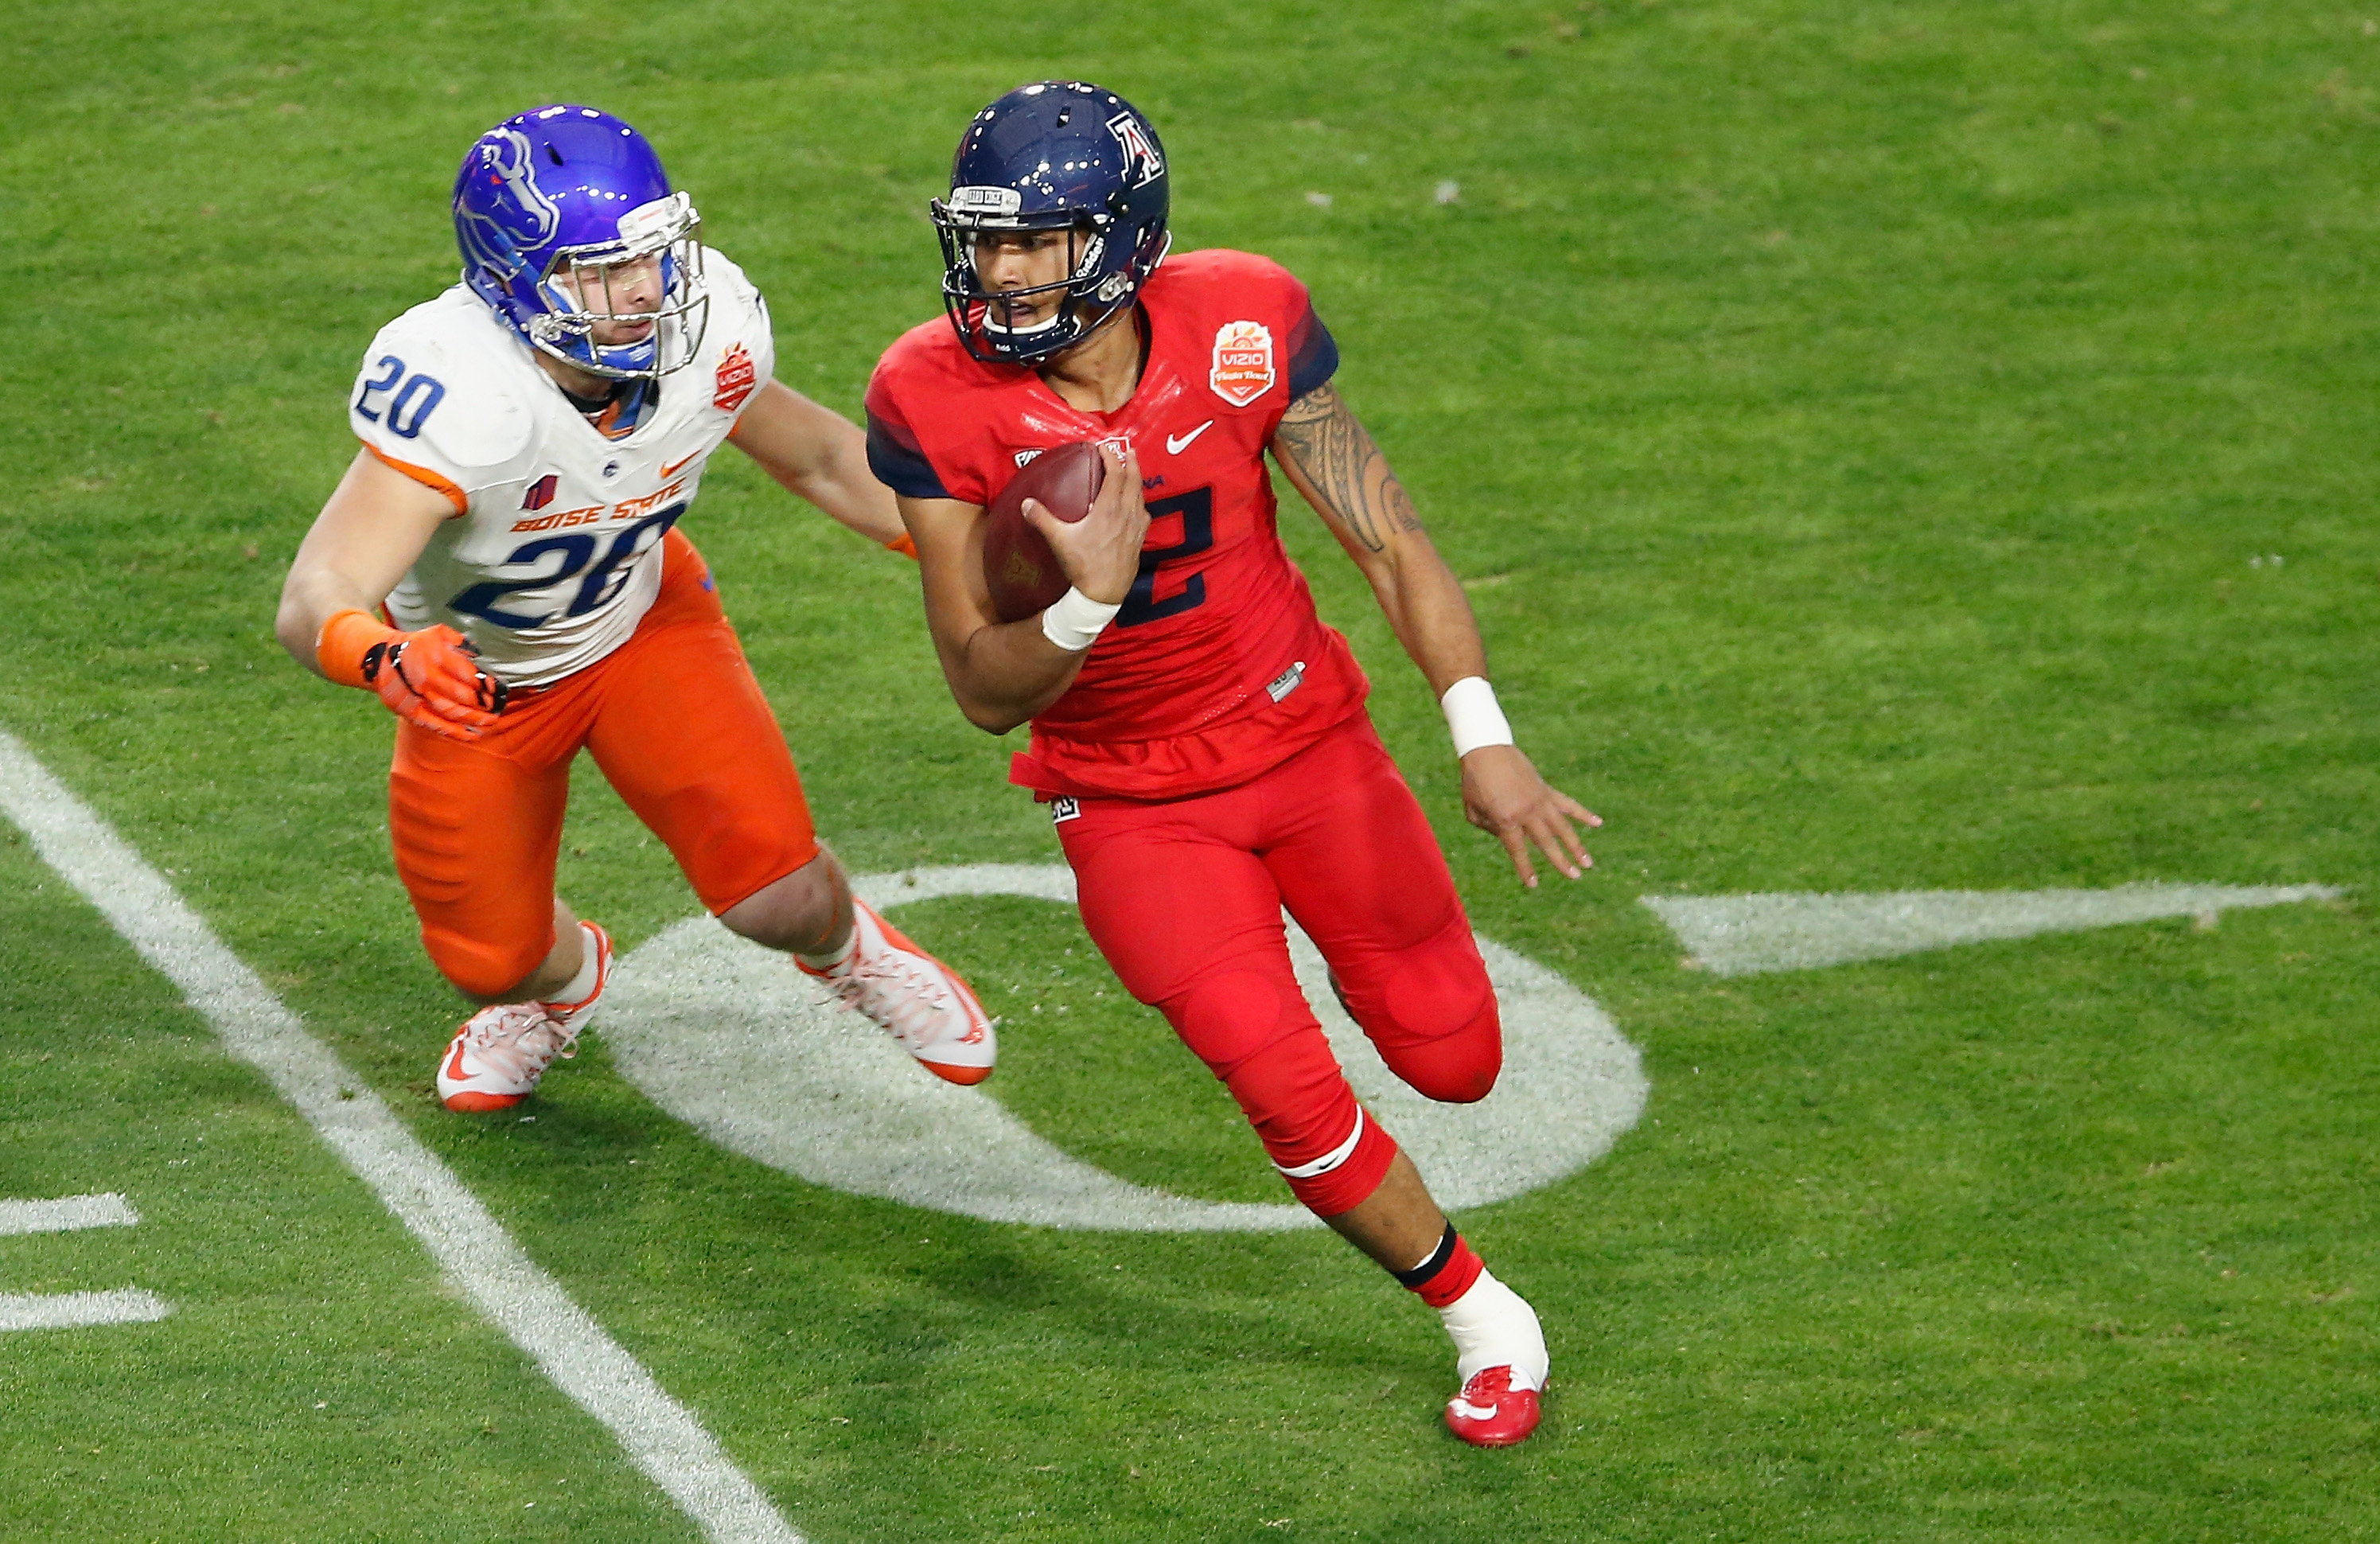 Bills sixth-round pick Tanner Vallejo pursue Arizona quarterback Anu Solomon in the 2014 Fiesta Bowl. (Photo by Christian Petersen/Getty Images)